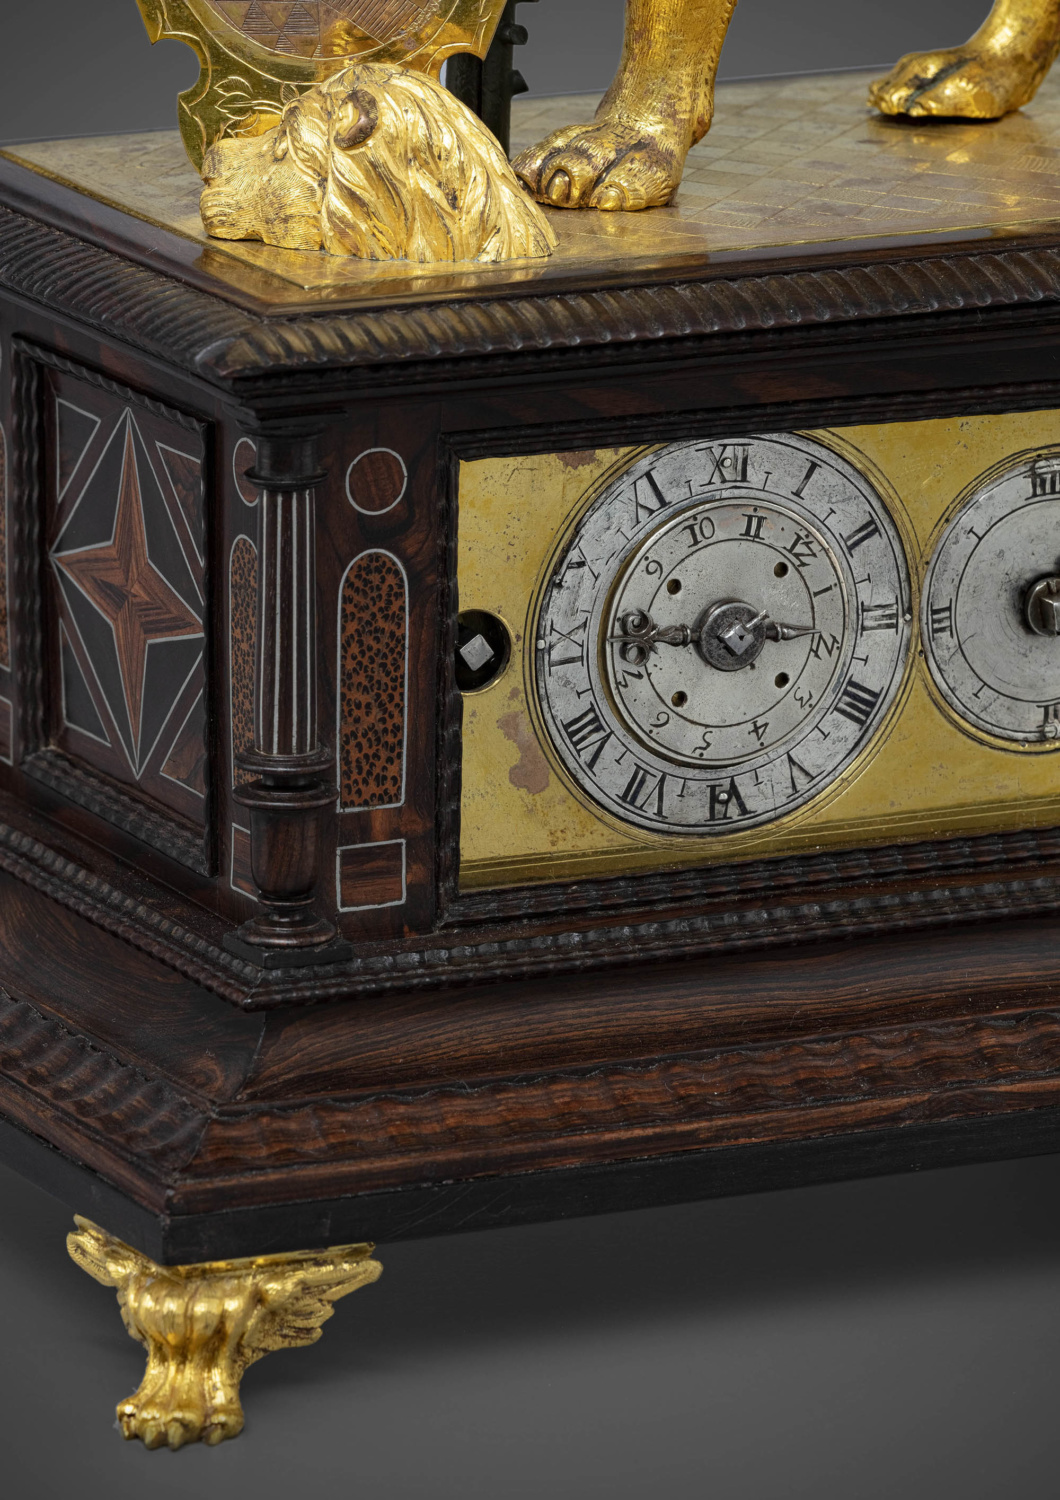 Automaton clock in the form of a pacing lion - Galerie Kugel